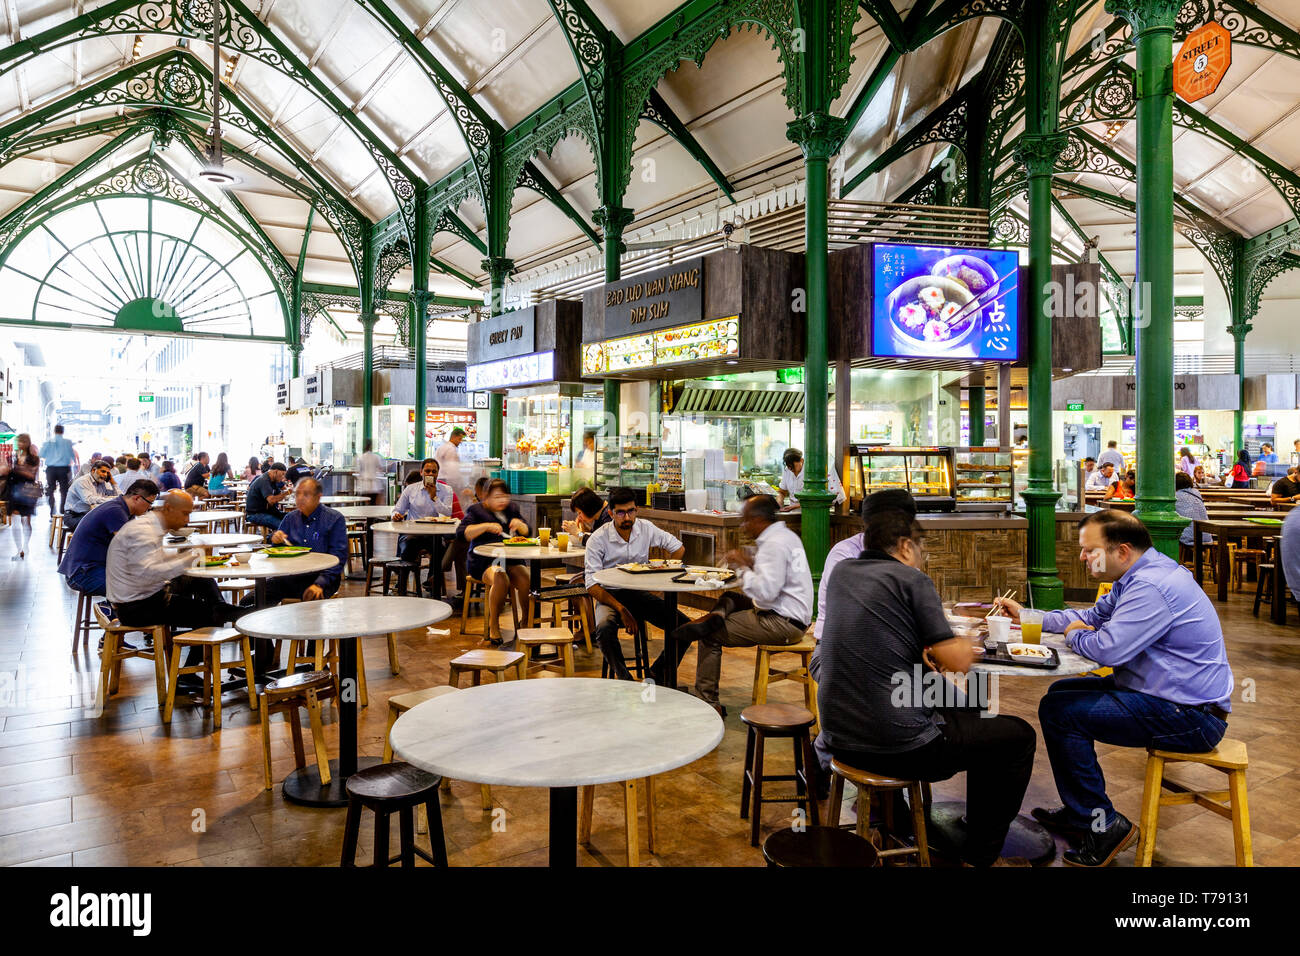 People Eating Lunchtime Food At The Lau Pa Sat Festival Market, Singapore, South East Asia - Stock Image